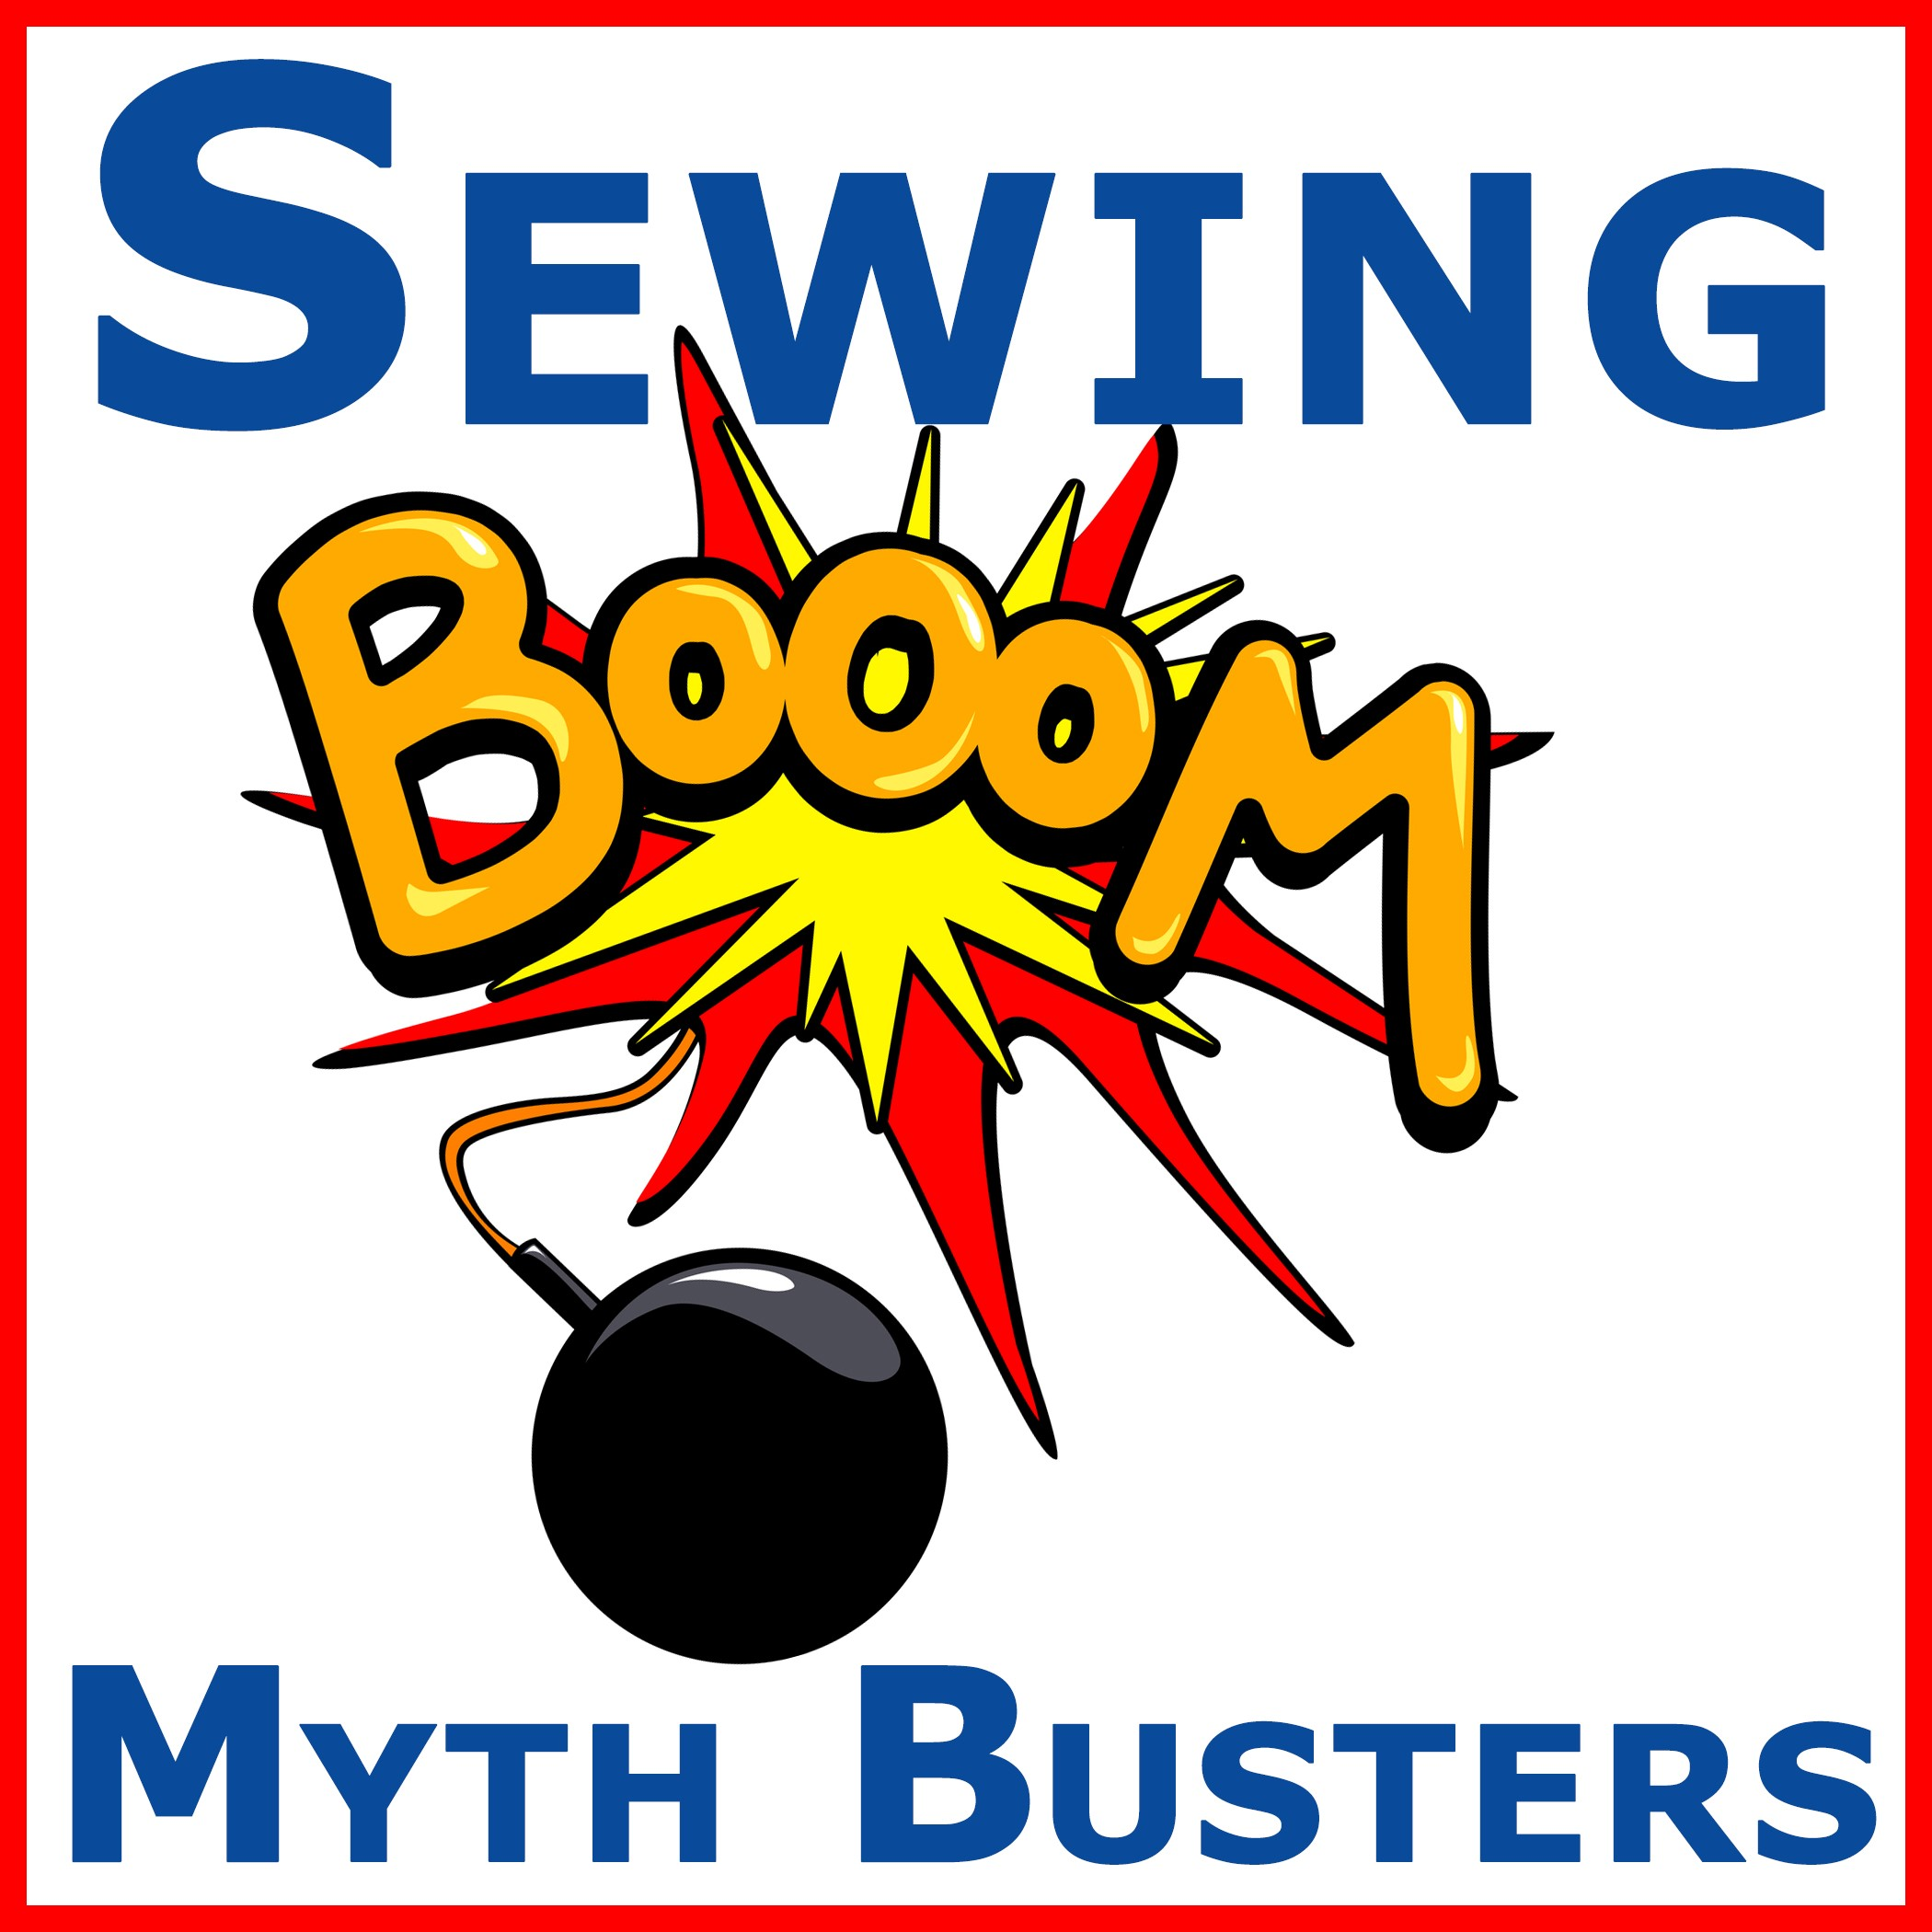 myth-buster-web-button-new.jpg